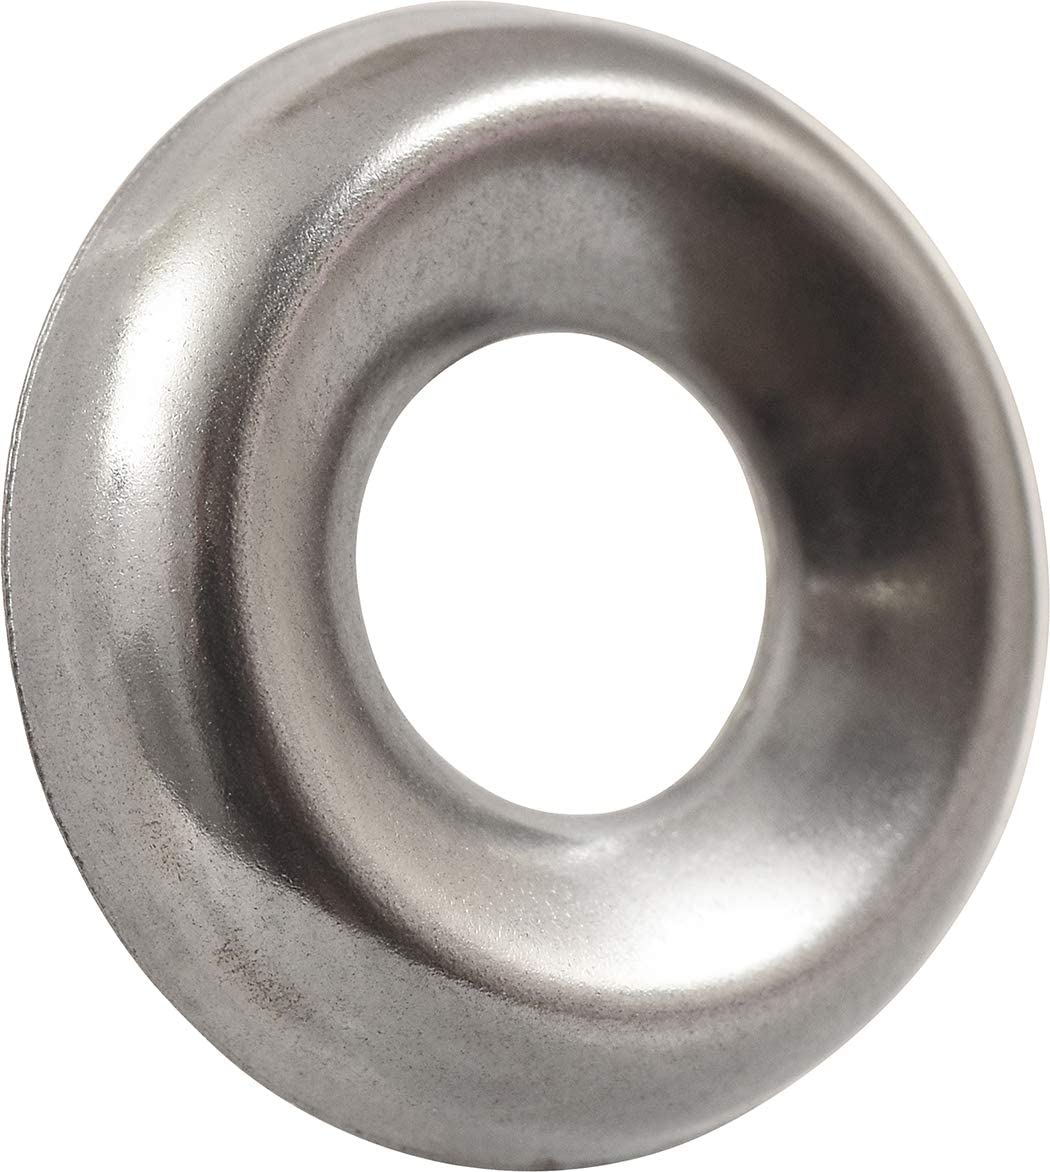 The Hillman Group 8860 Number 12 Stainless Steel Finish Washer 6-Pack